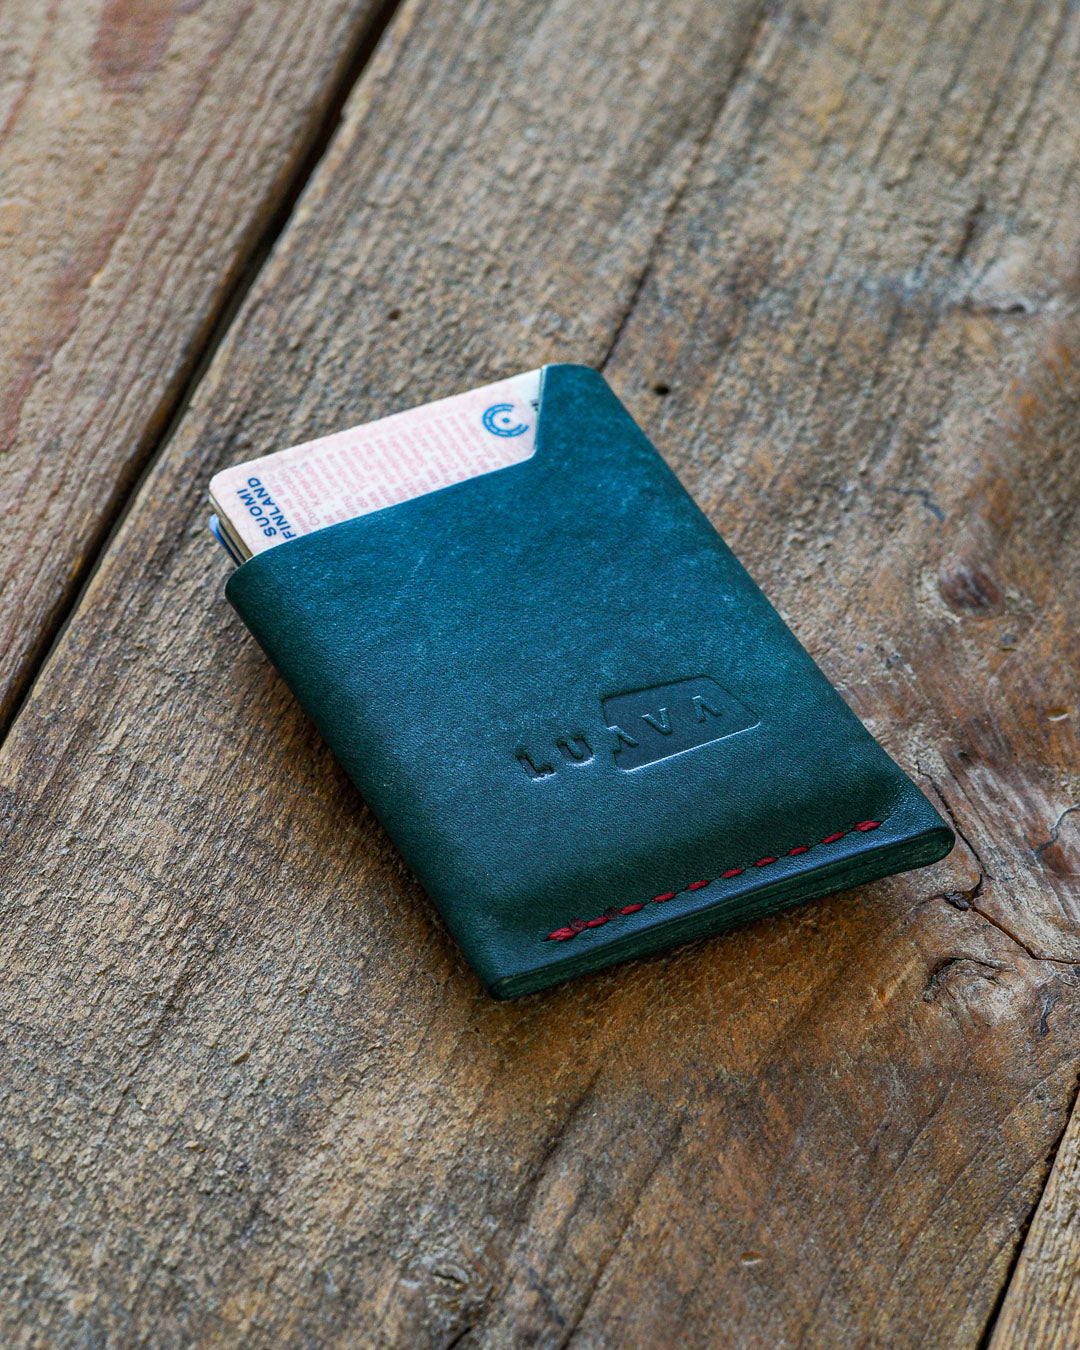 Luava handmade leather wallet handcrafted card holder wrap cardholder made in finland vortex maya turquoise back in use angle